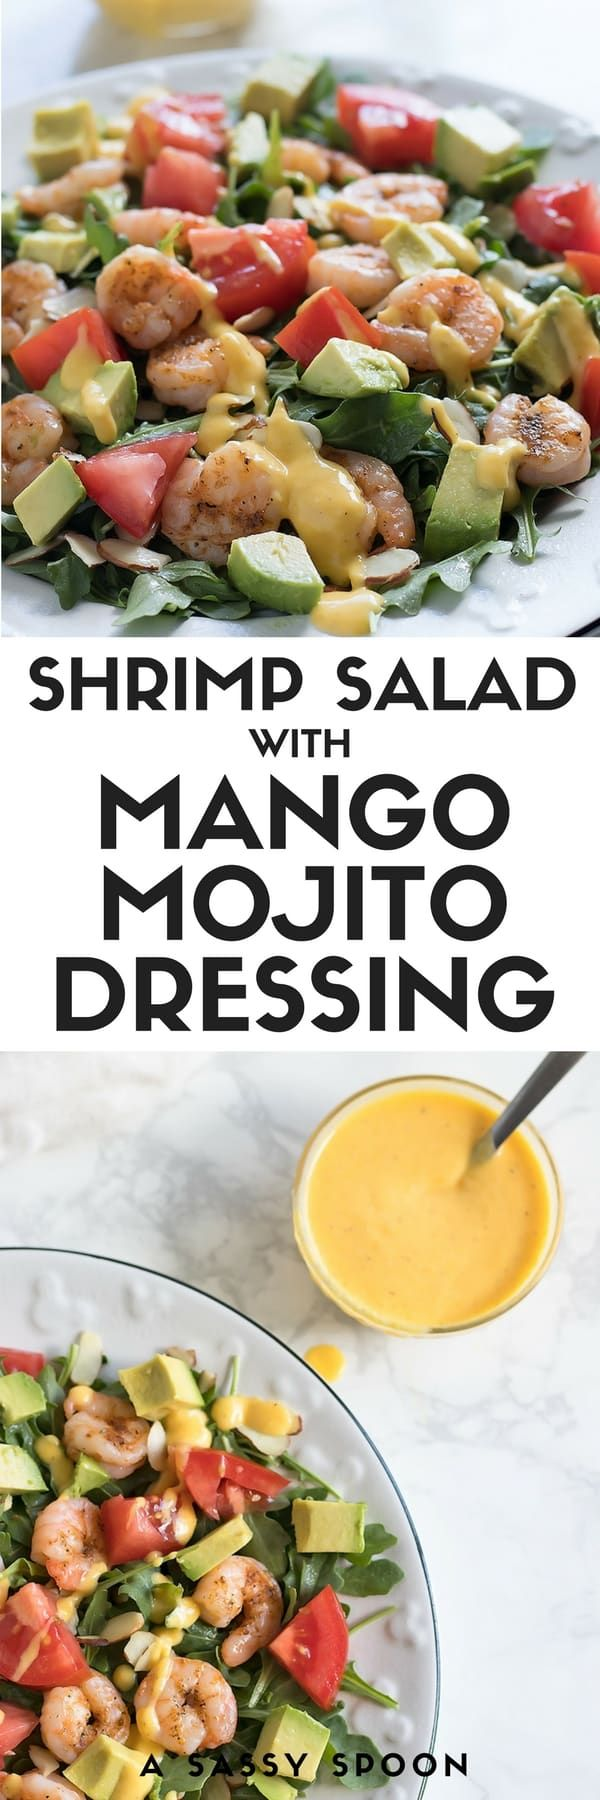 Give this simple shrimp, avocado, tomato salad a tropical twist by adding a deliciously creamy homemade mango mojito dressing! Don't forget the almonds for some added CRUNCH. via @asassyspoon